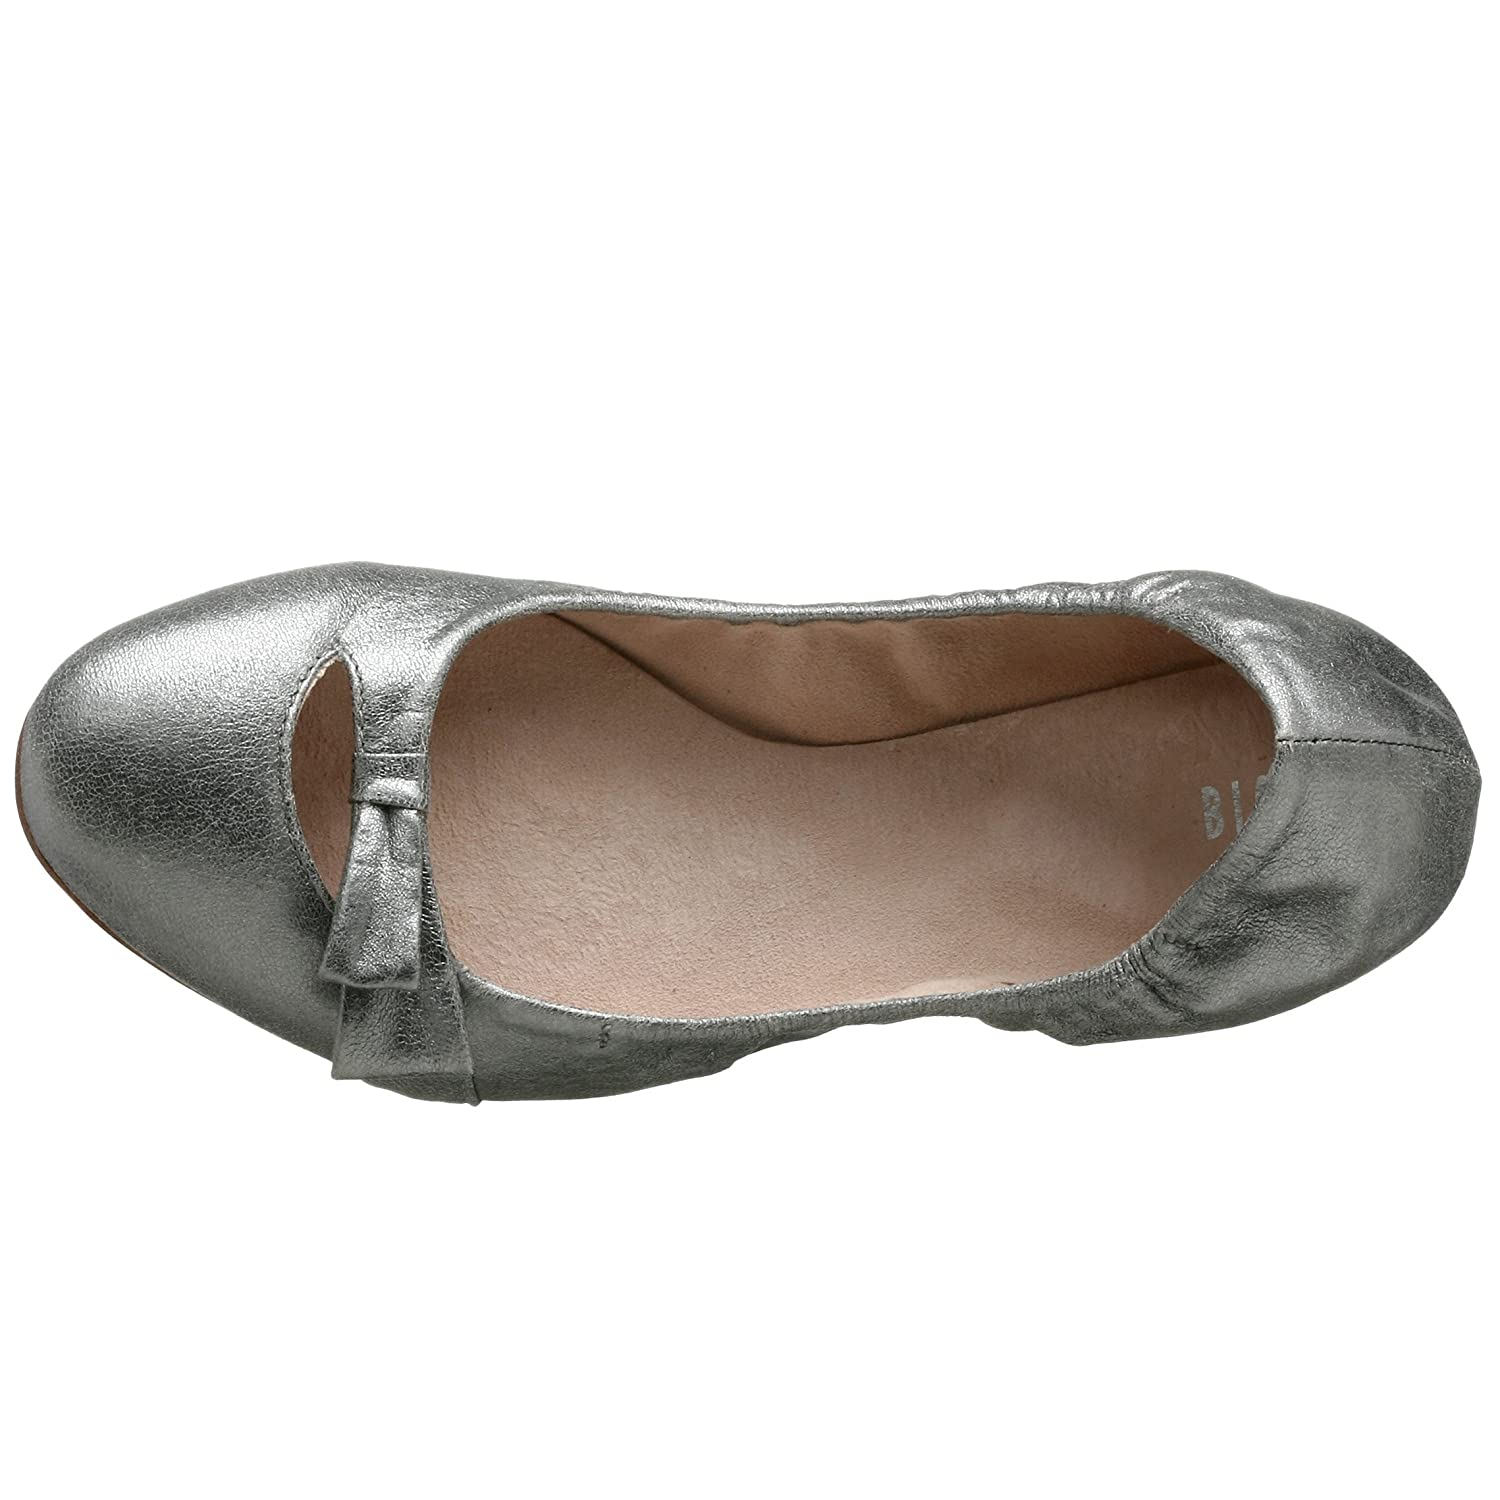 Bloch London Side Star Bow Ballet Flat - Free Overnight Shipping & Return Shipping: Endless.com from endless.com